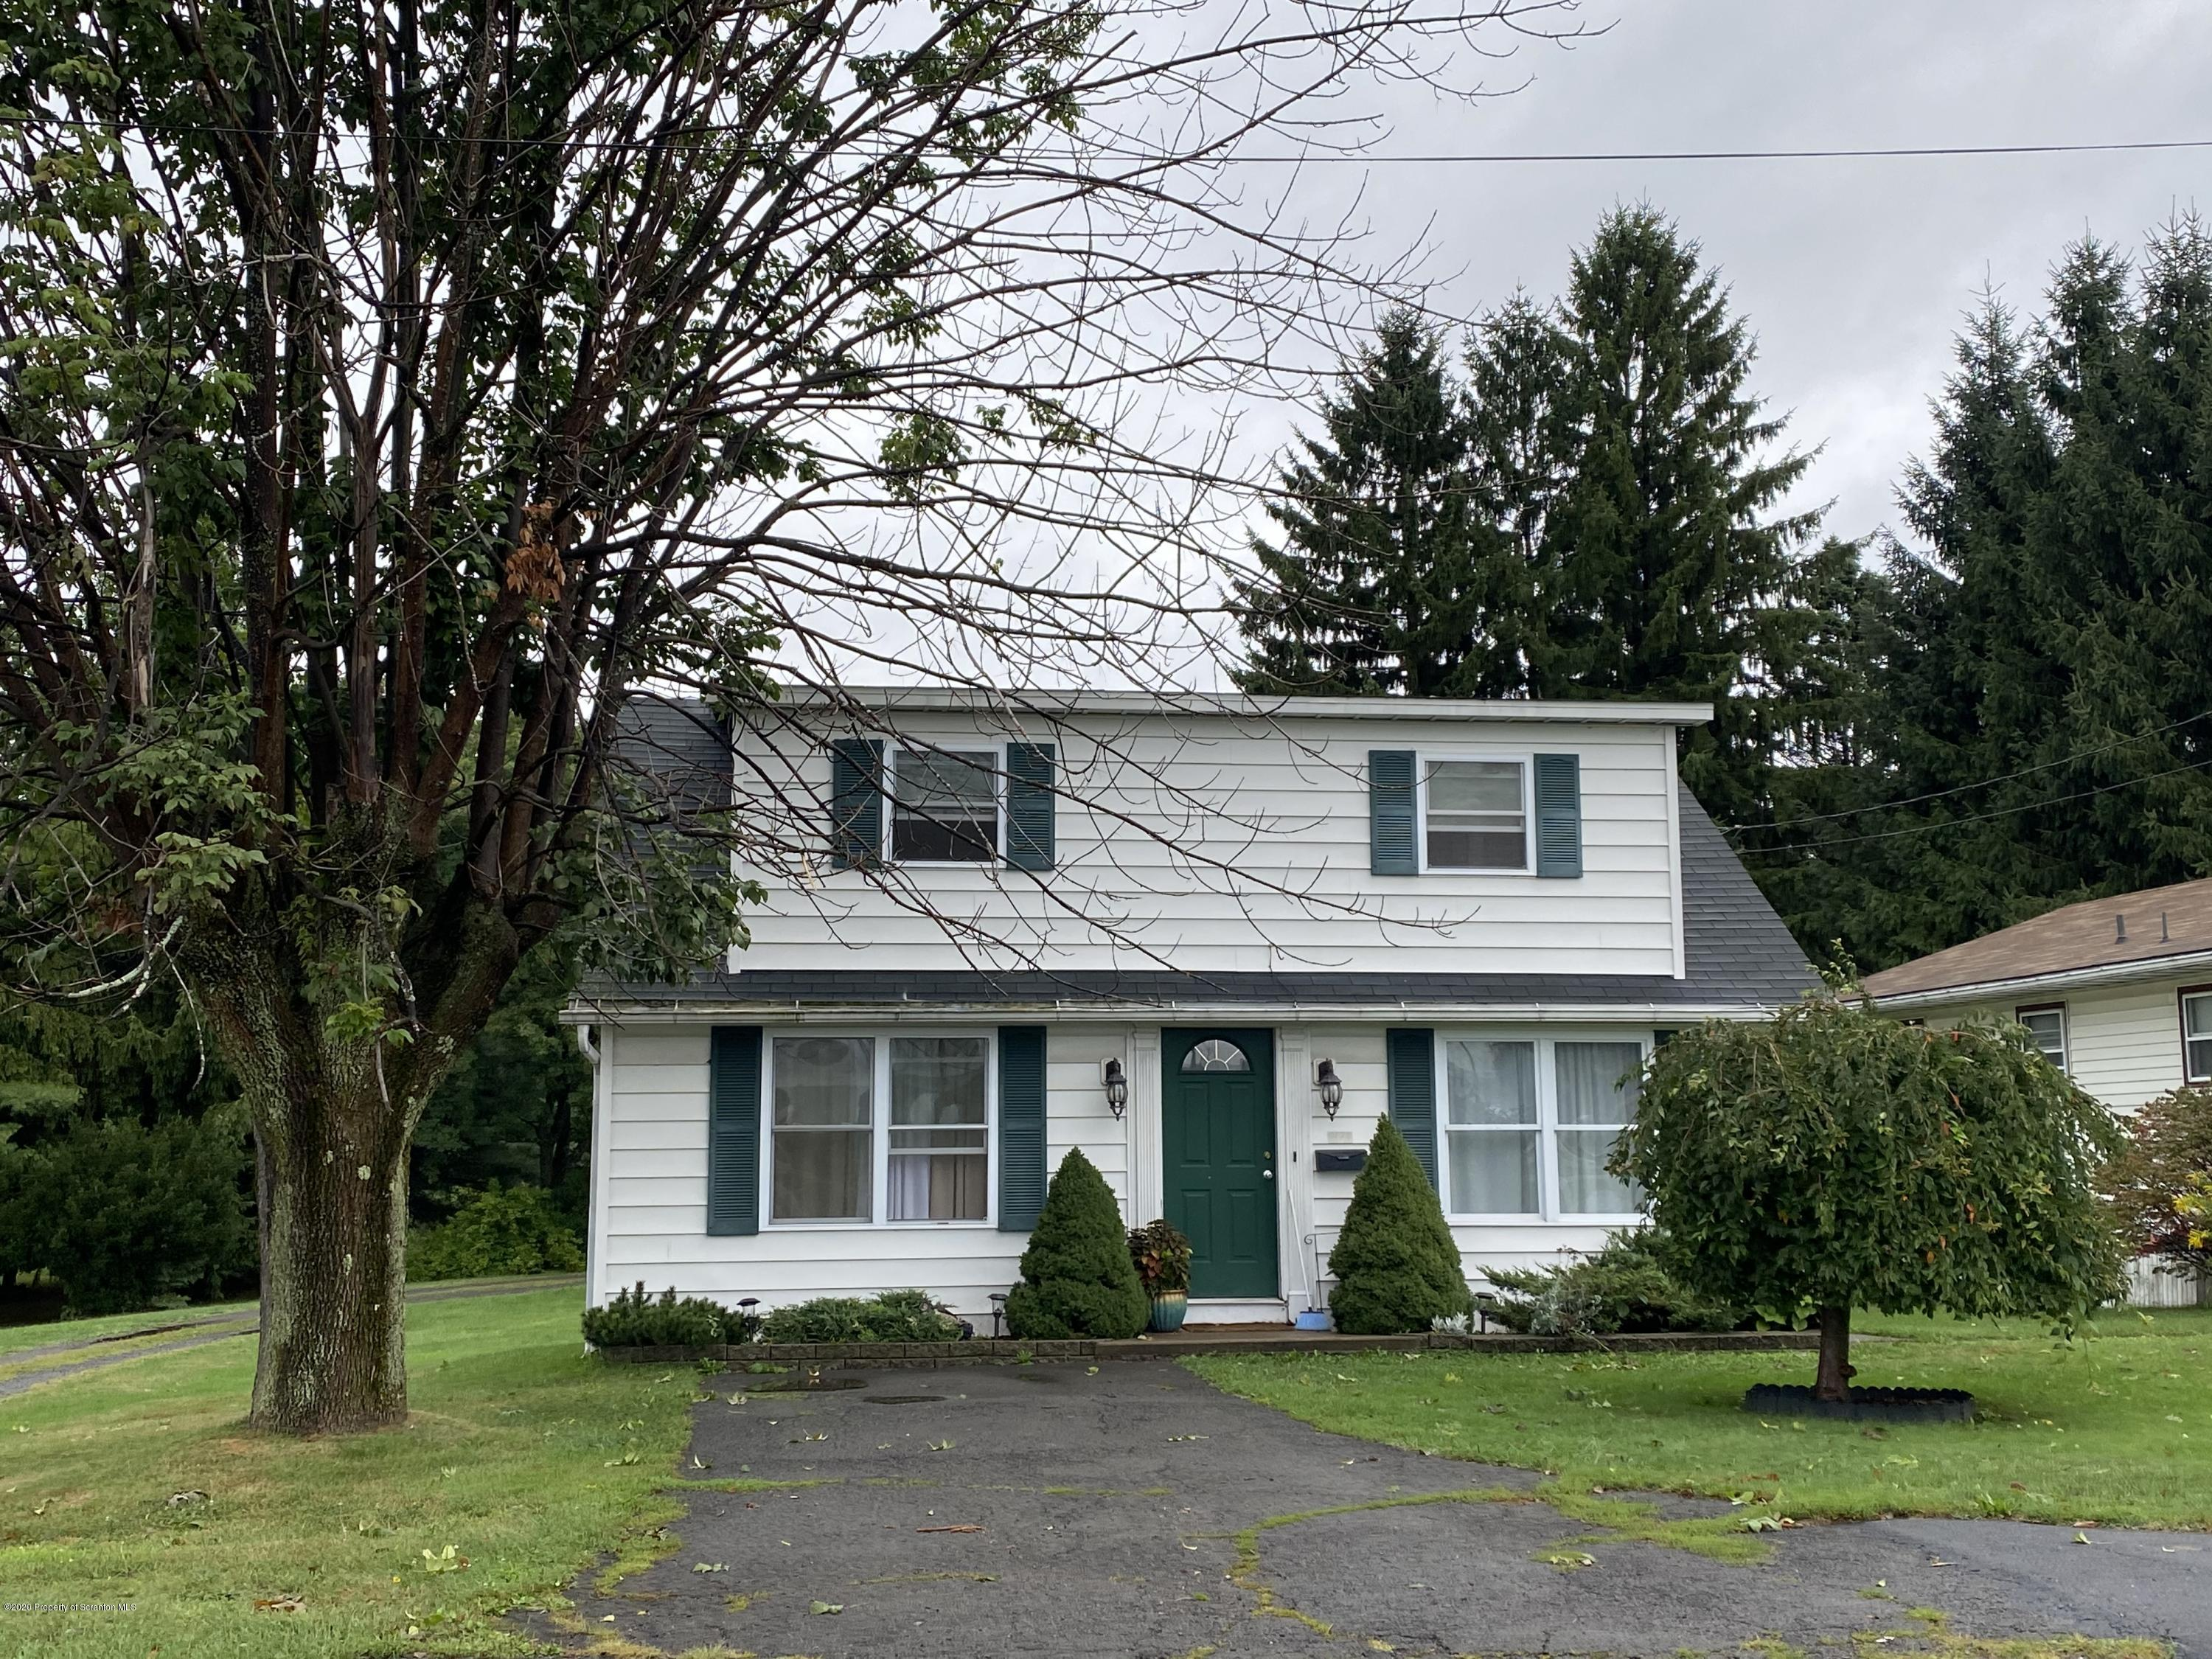 171 Main St, Eynon, Pennsylvania 18403, 3 Bedrooms Bedrooms, 6 Rooms Rooms,2 BathroomsBathrooms,Single Family,For Sale,Main,20-3754